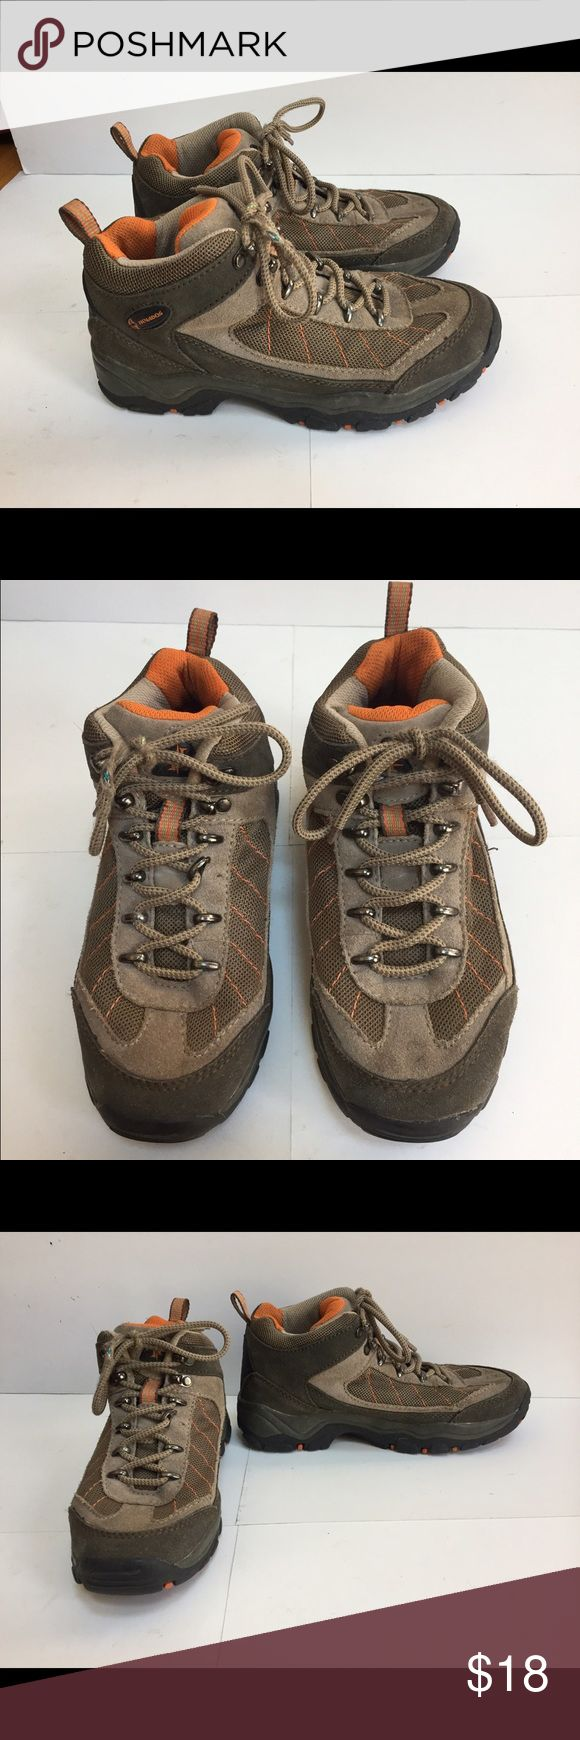 Nevados ladies hiking boots These are in excellent condition, they just may need the laces replaced as they are still usable but fraying (as shown in picture) hence the low asking price, otherwise it's hard to tell they have been used. Any questions please ask me!! Nevados Shoes Lace Up Boots